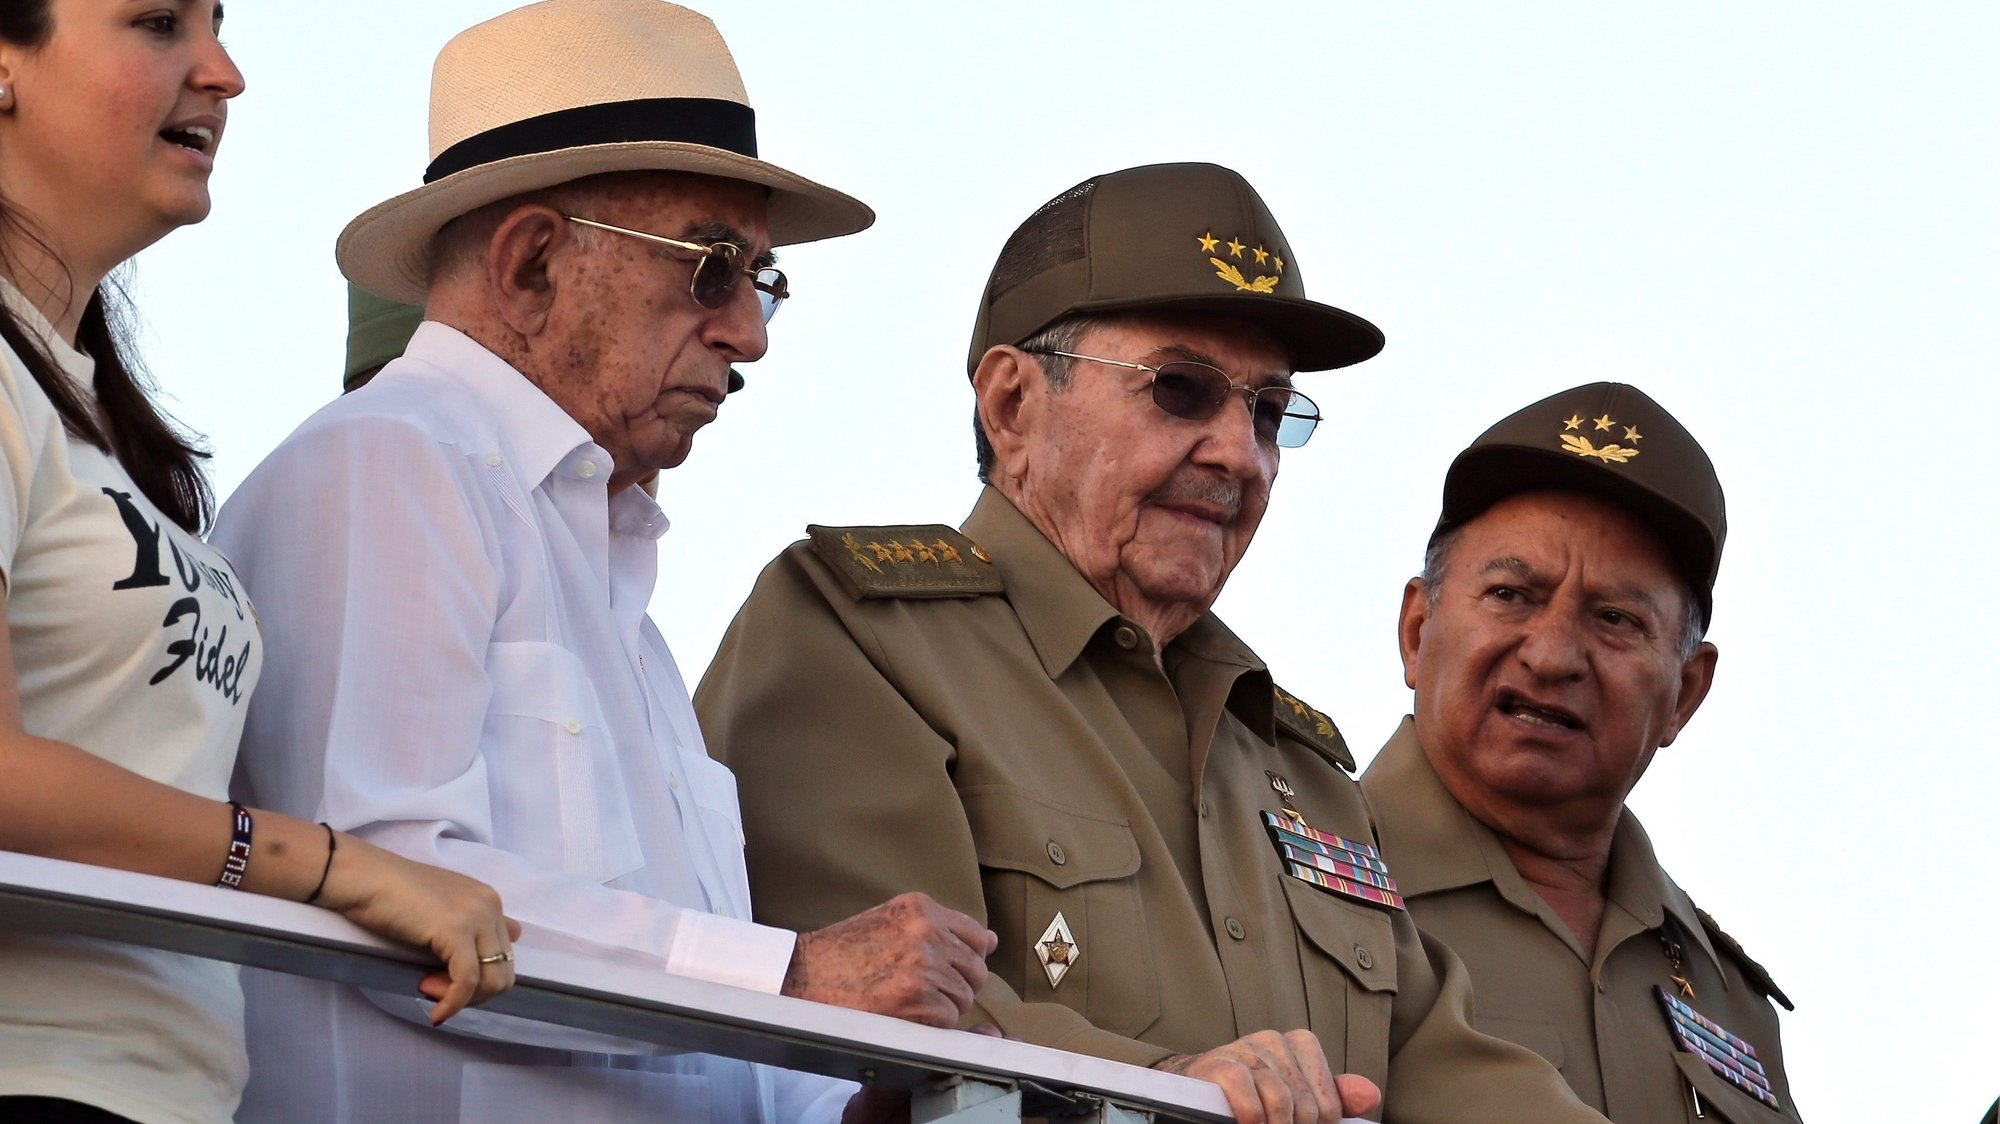 epa05695209 Cuban President Raul Castro (2-R), with Comunist Party under secretary Jose Ramon Machado (2-L), Revolutionary Army Forces minister Leopoldo Cintra Frias (R) and President of the Universitary Students Federation Jennifer Bella (L) attend the military parade on the occasion of the 58th anniversary of the Cuban Revolution, at the Revolution Square, in Havana, Cuba, 02 January 2017. The military parade and march of the 'combative people' is dedicated to former Cuban leader Fidel Castro, who died last November 2016.  EPA/ALEJANDRO ERNESTO